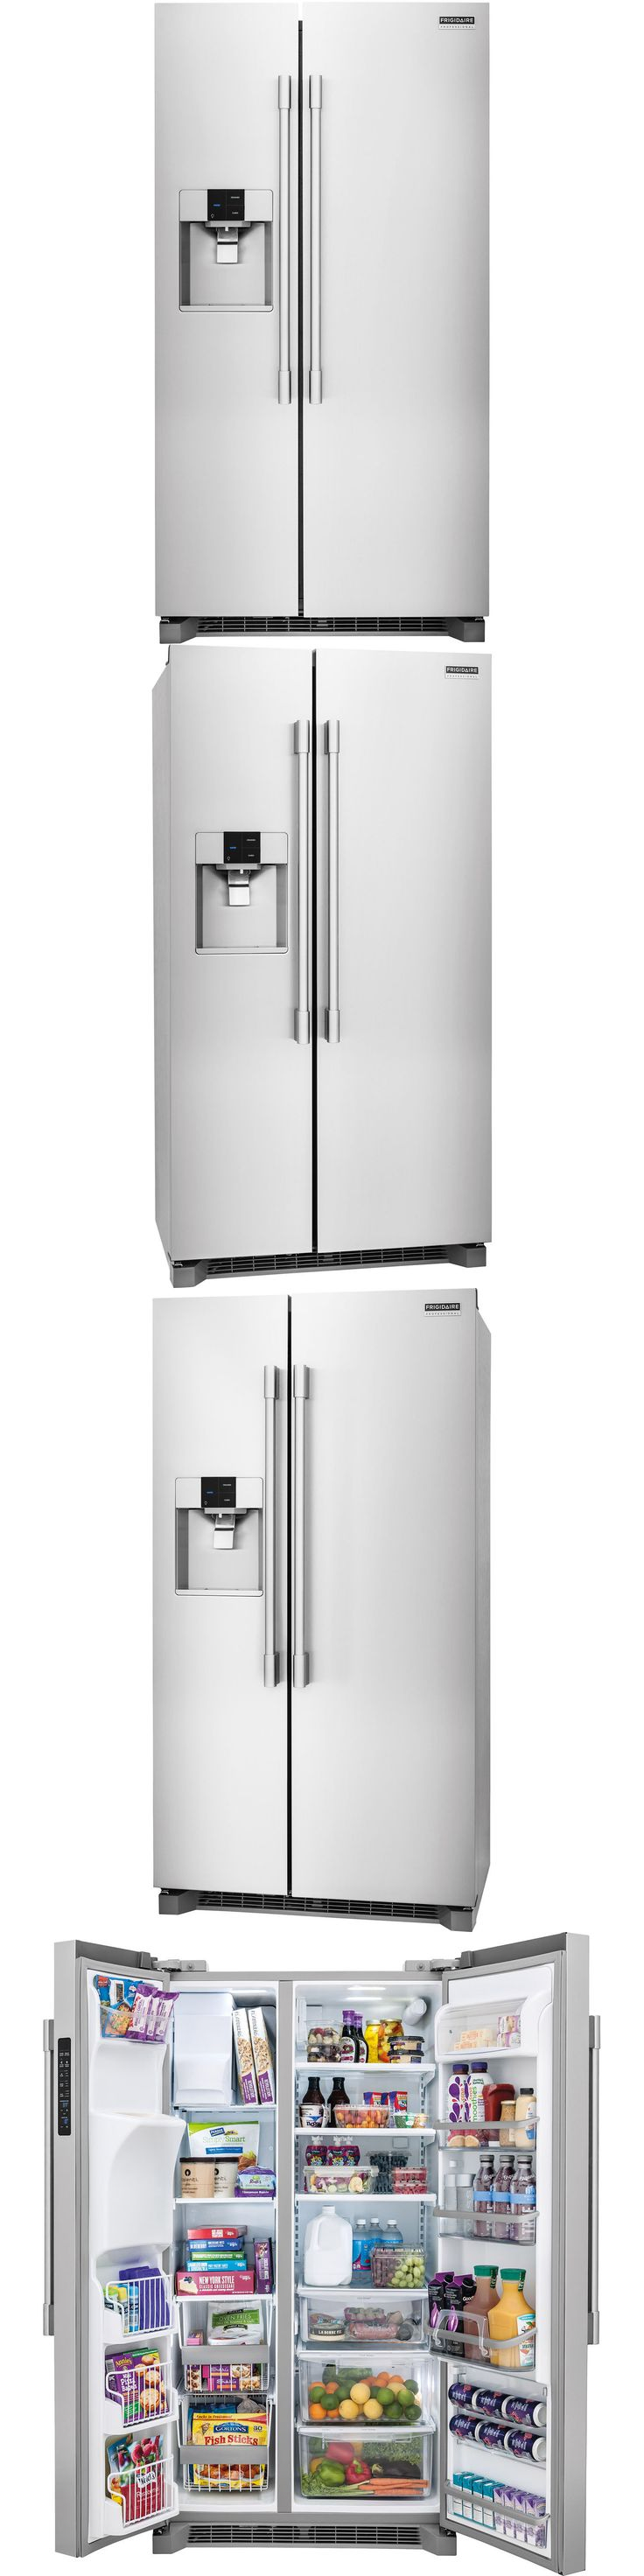 Refrigerators 20713: Frigidaire Stainless Pro Counter-Depth Side-By-Side Refrigerator Fpsc2277rf -> BUY IT NOW ONLY: $1799 on eBay!